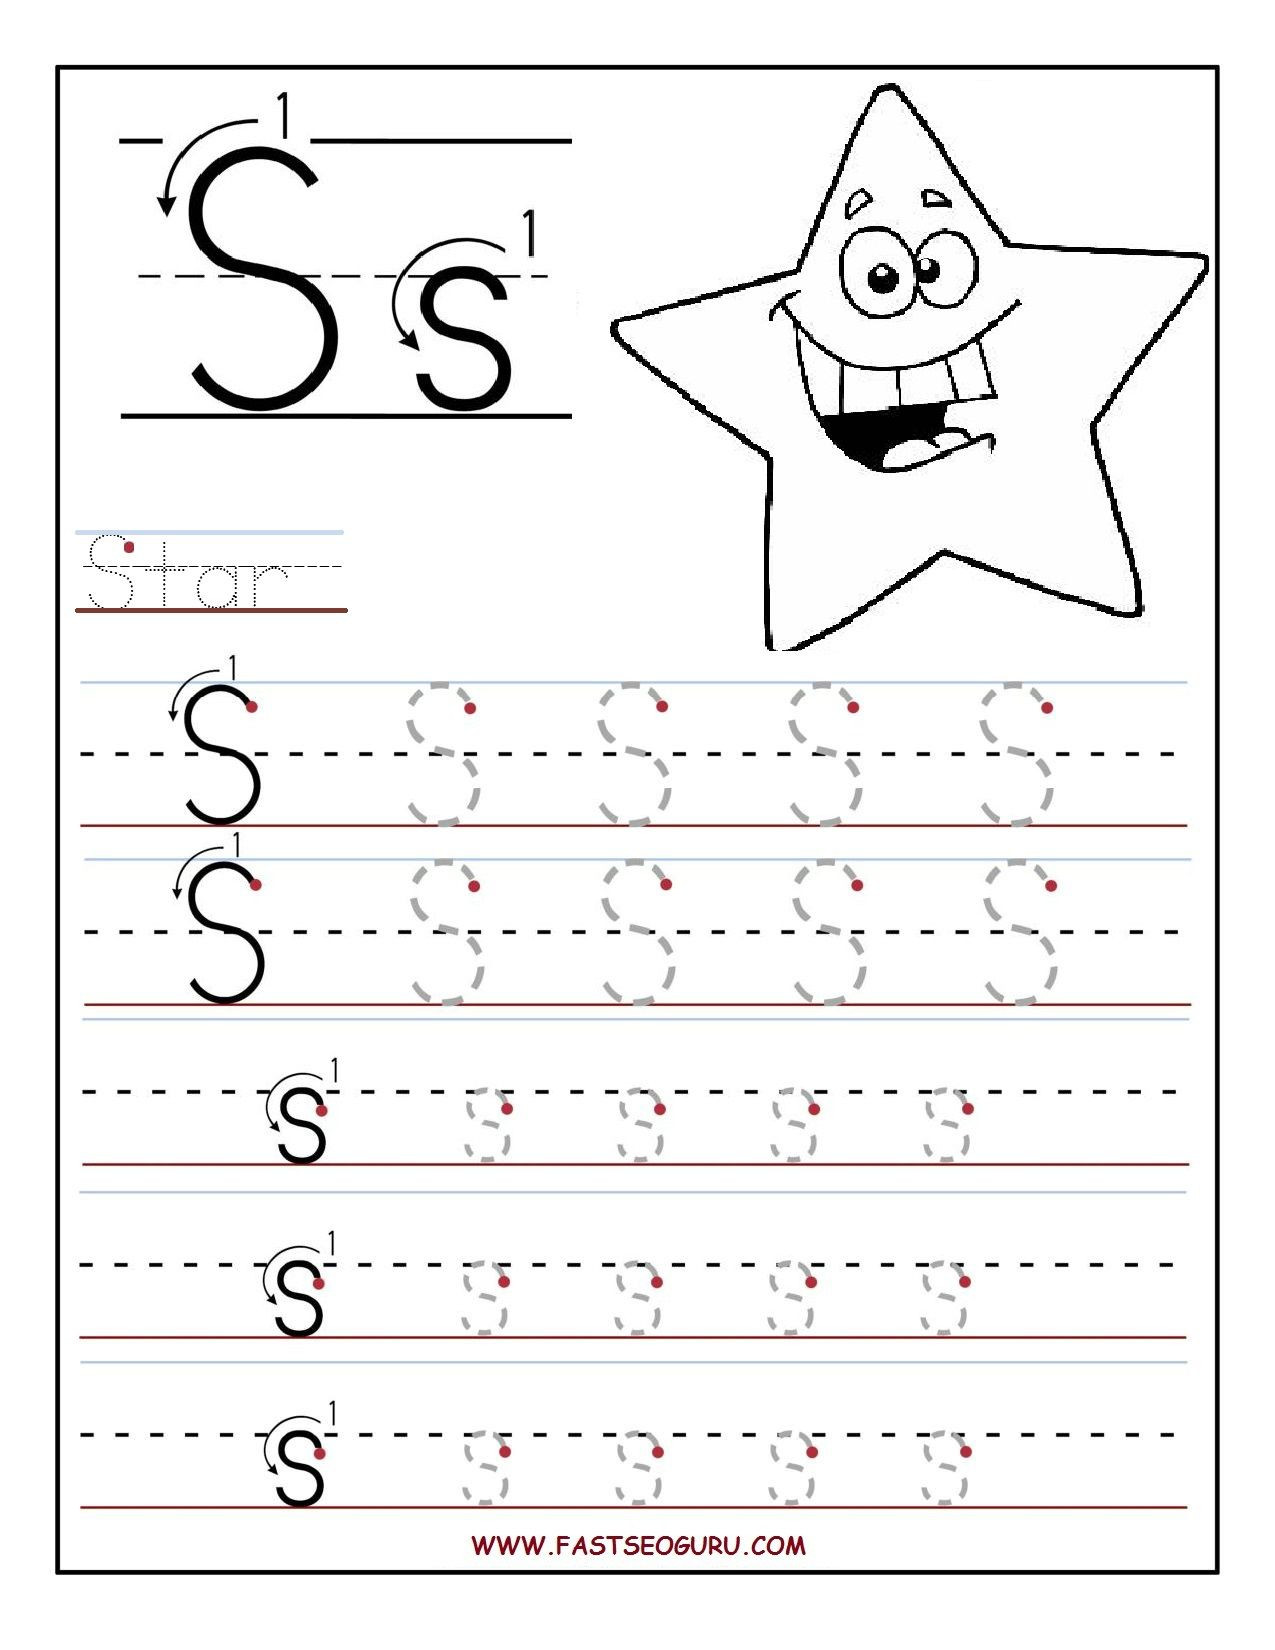 Printable Hangul Worksheets Write Abc Learn Alphabets Download